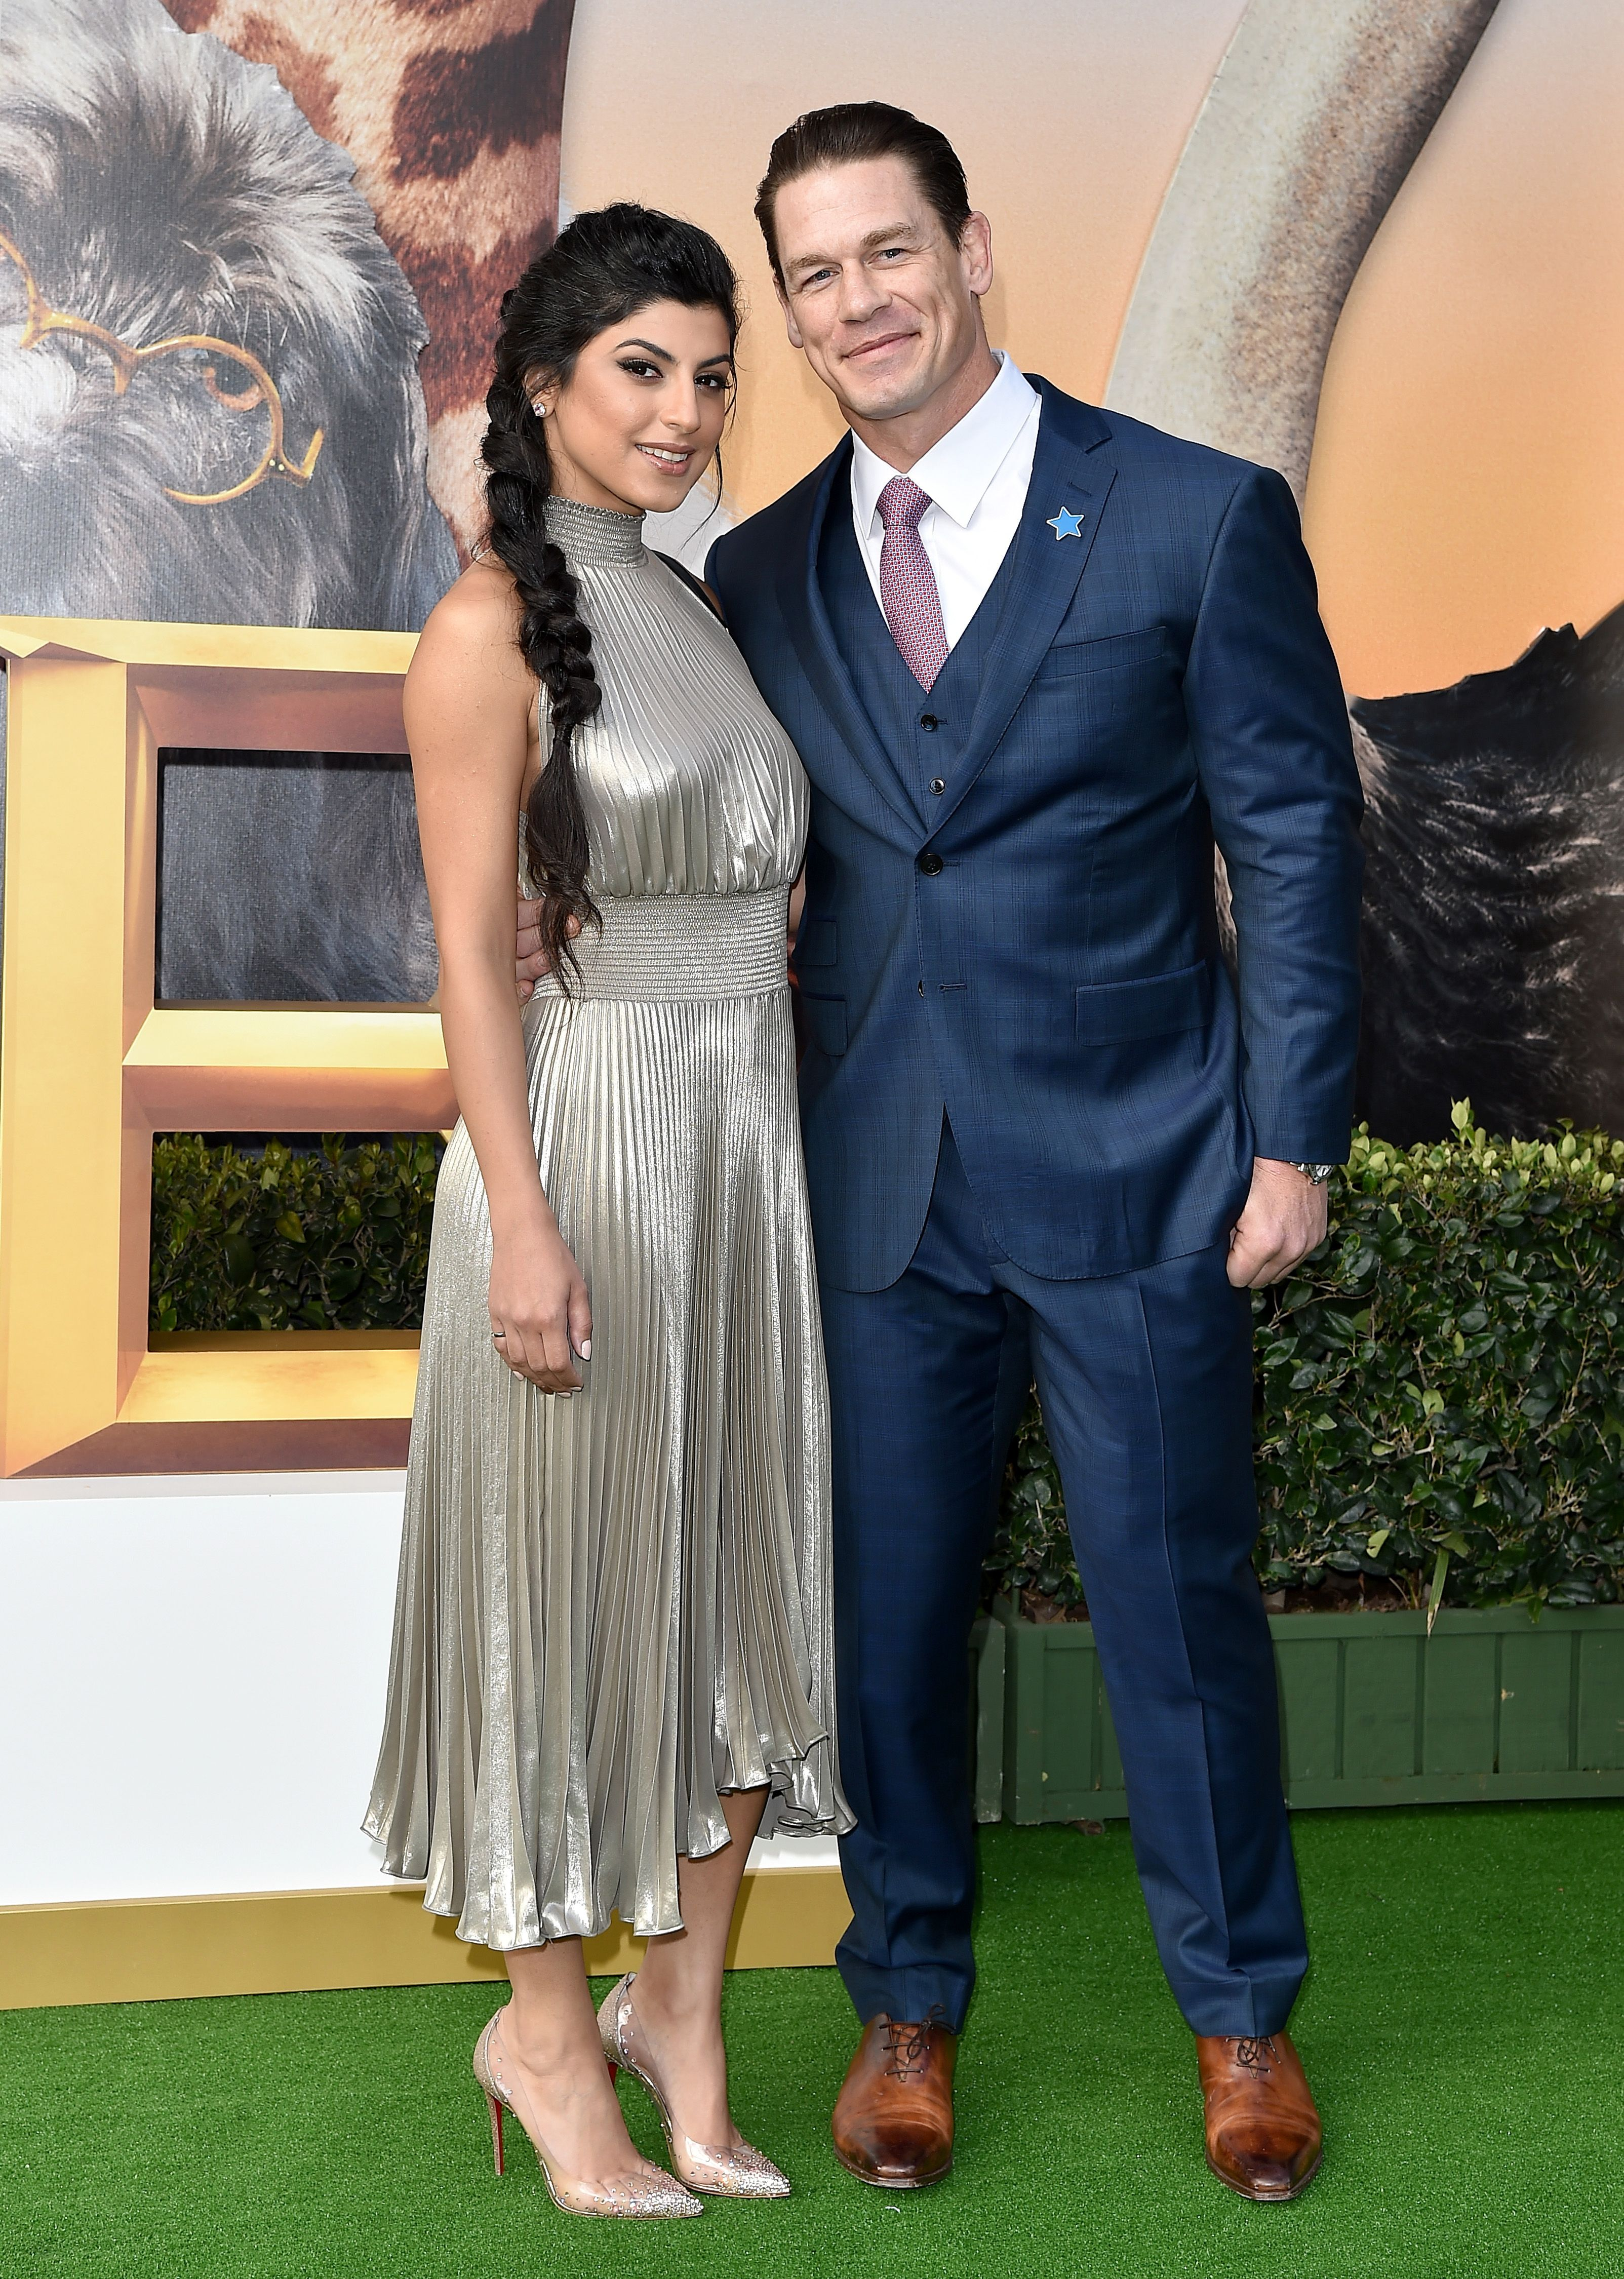 """Shay Shariatzadeh and John Cena at the premiere of Universal Pictures' """"Dolittle"""" at the Regency Village Theater on January 11, 2020 